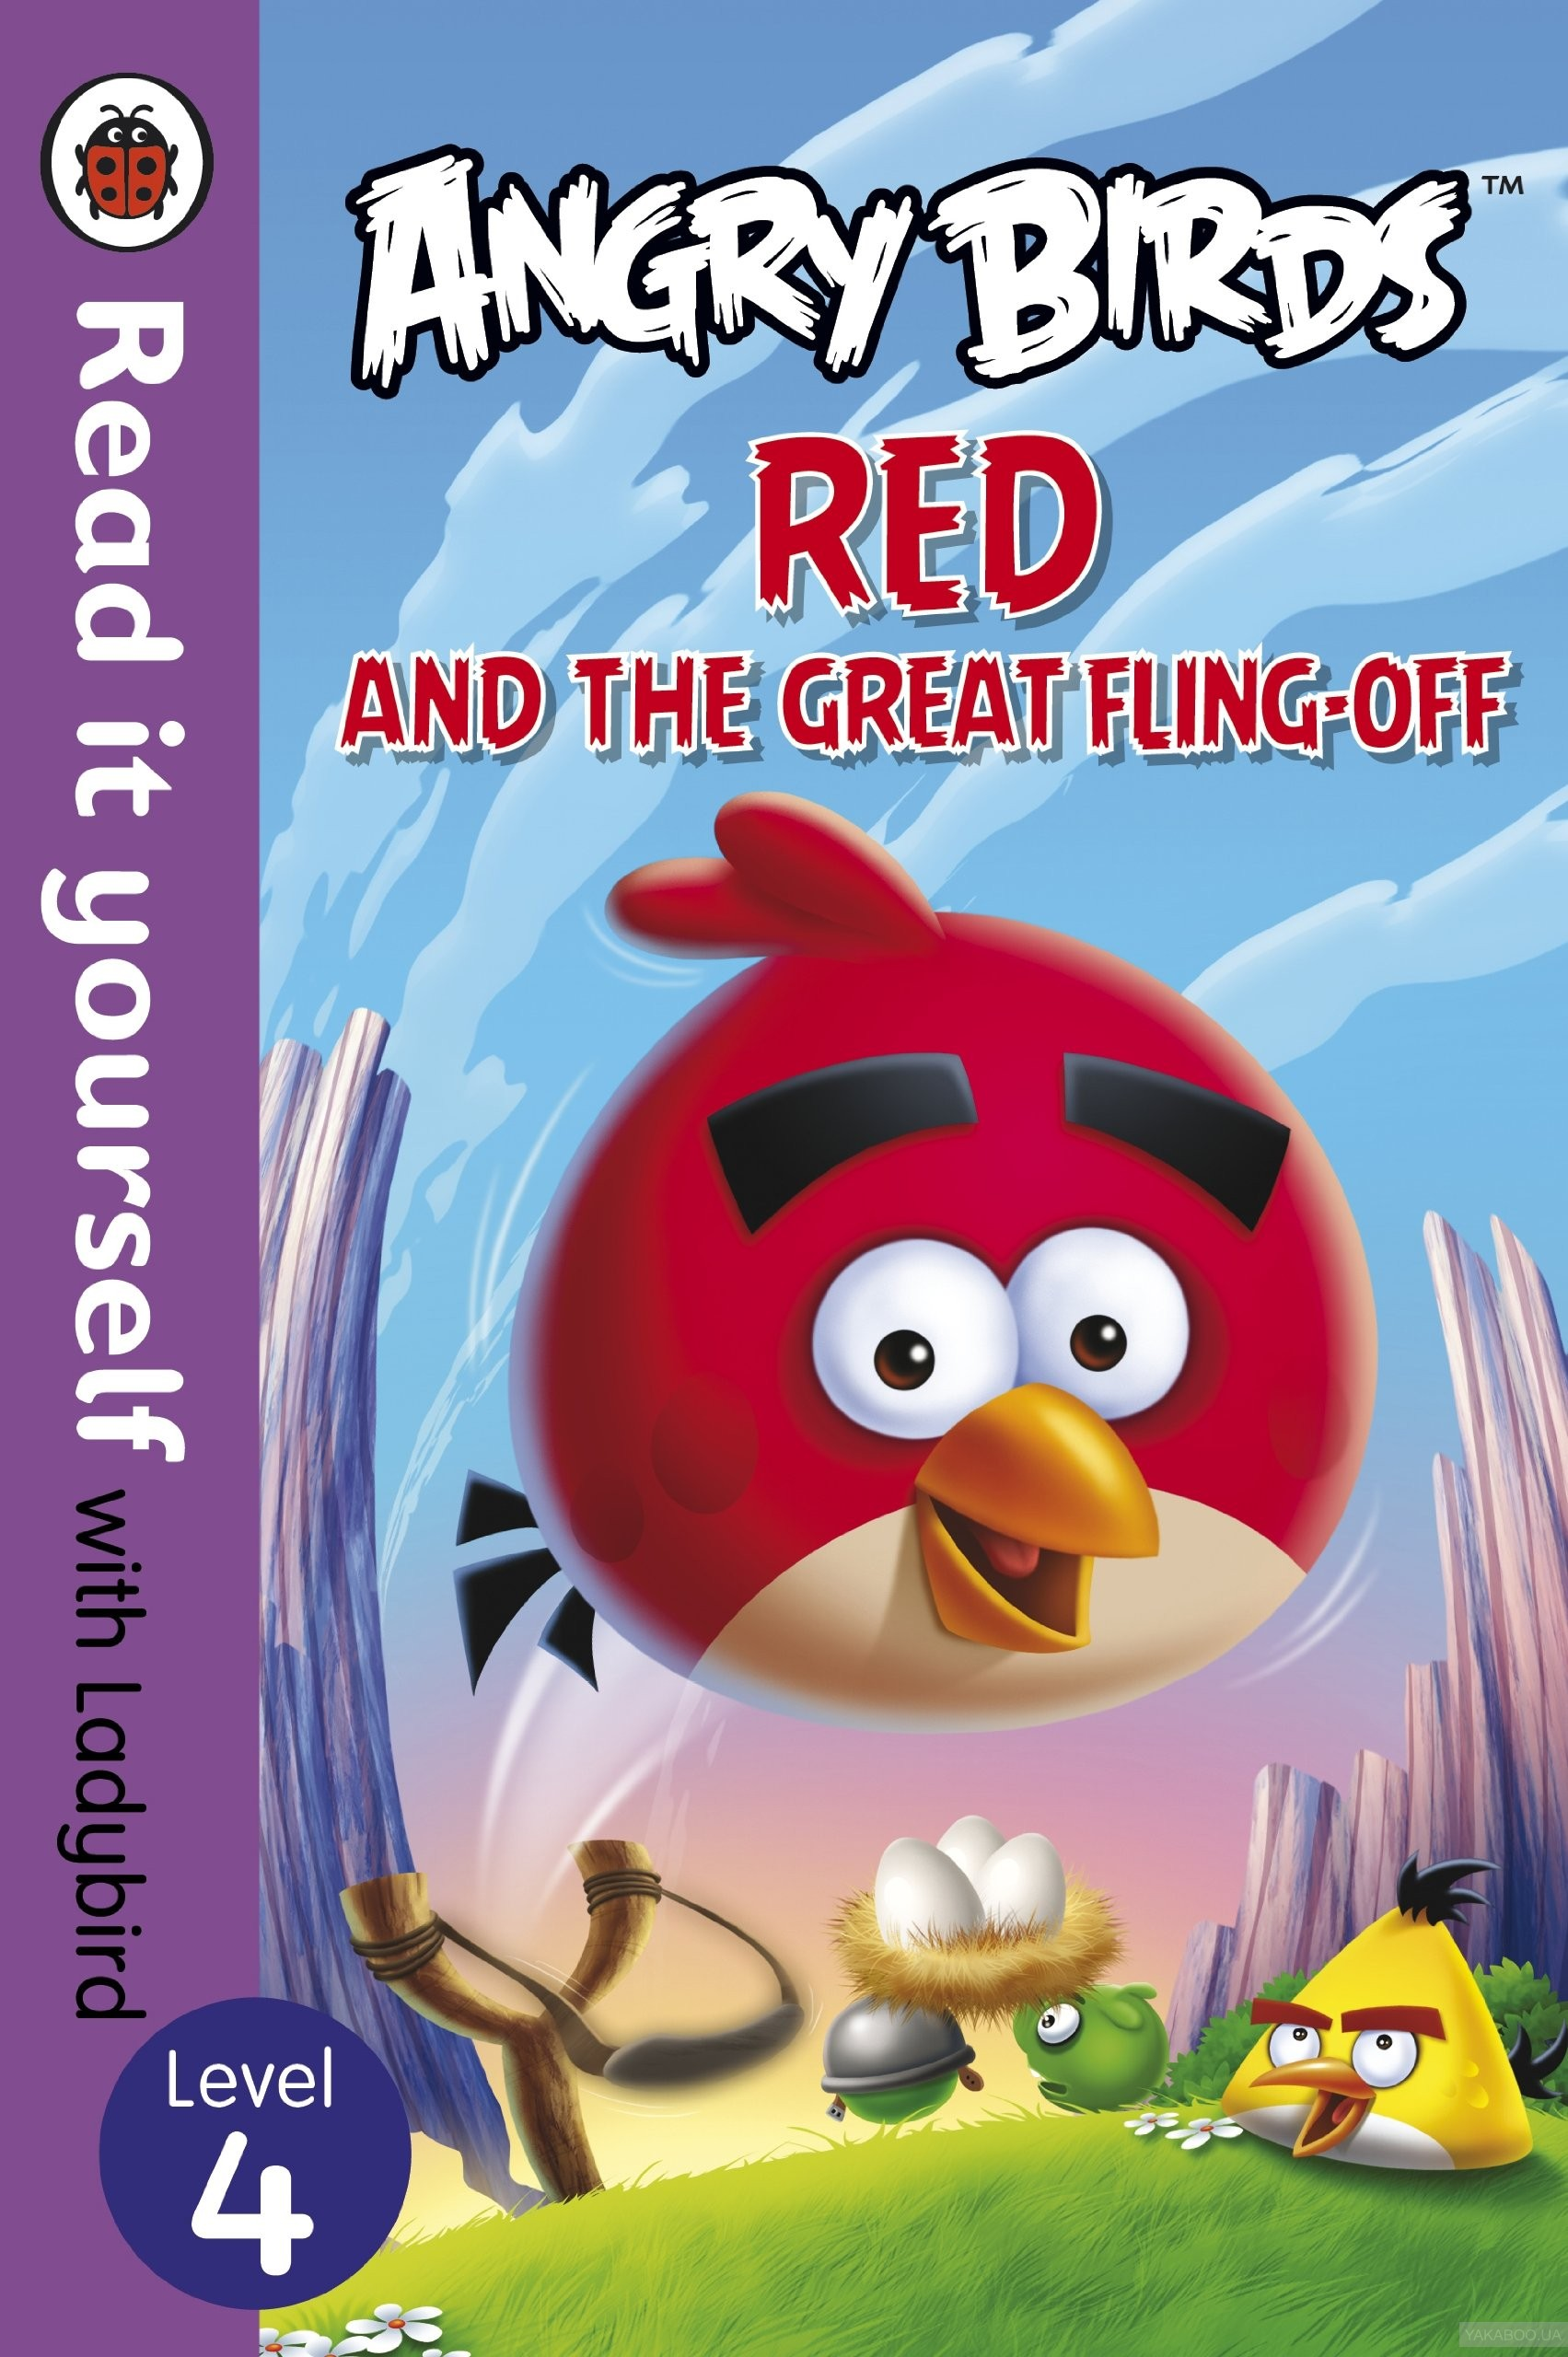 Angry Birds. Red and the Great Fling-Off. Level 4